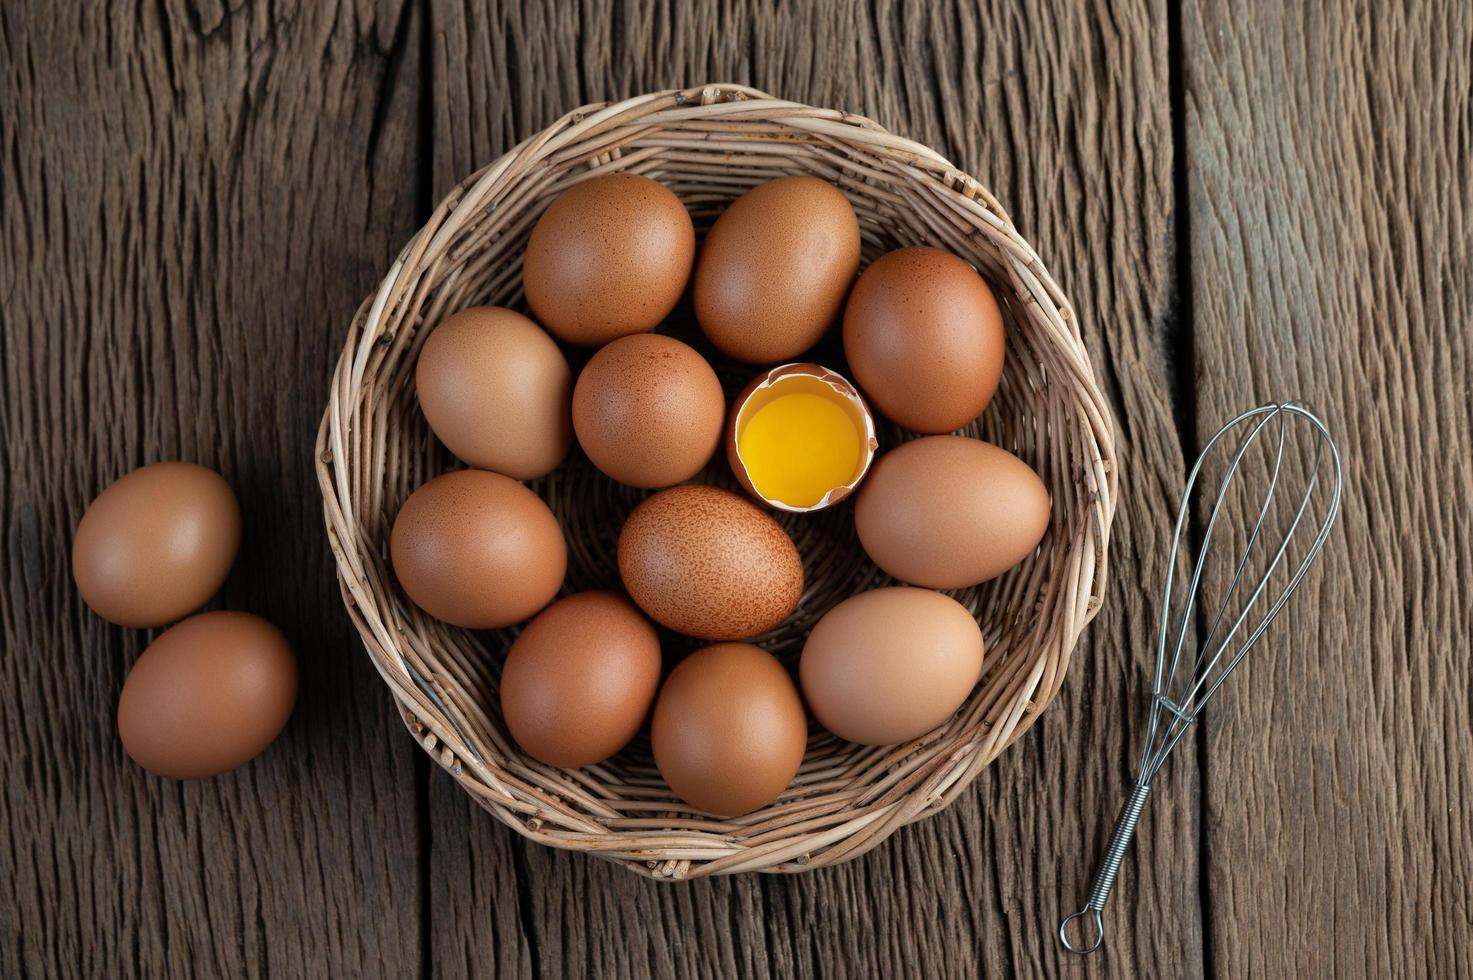 Laid eggs in a wooden basket photo